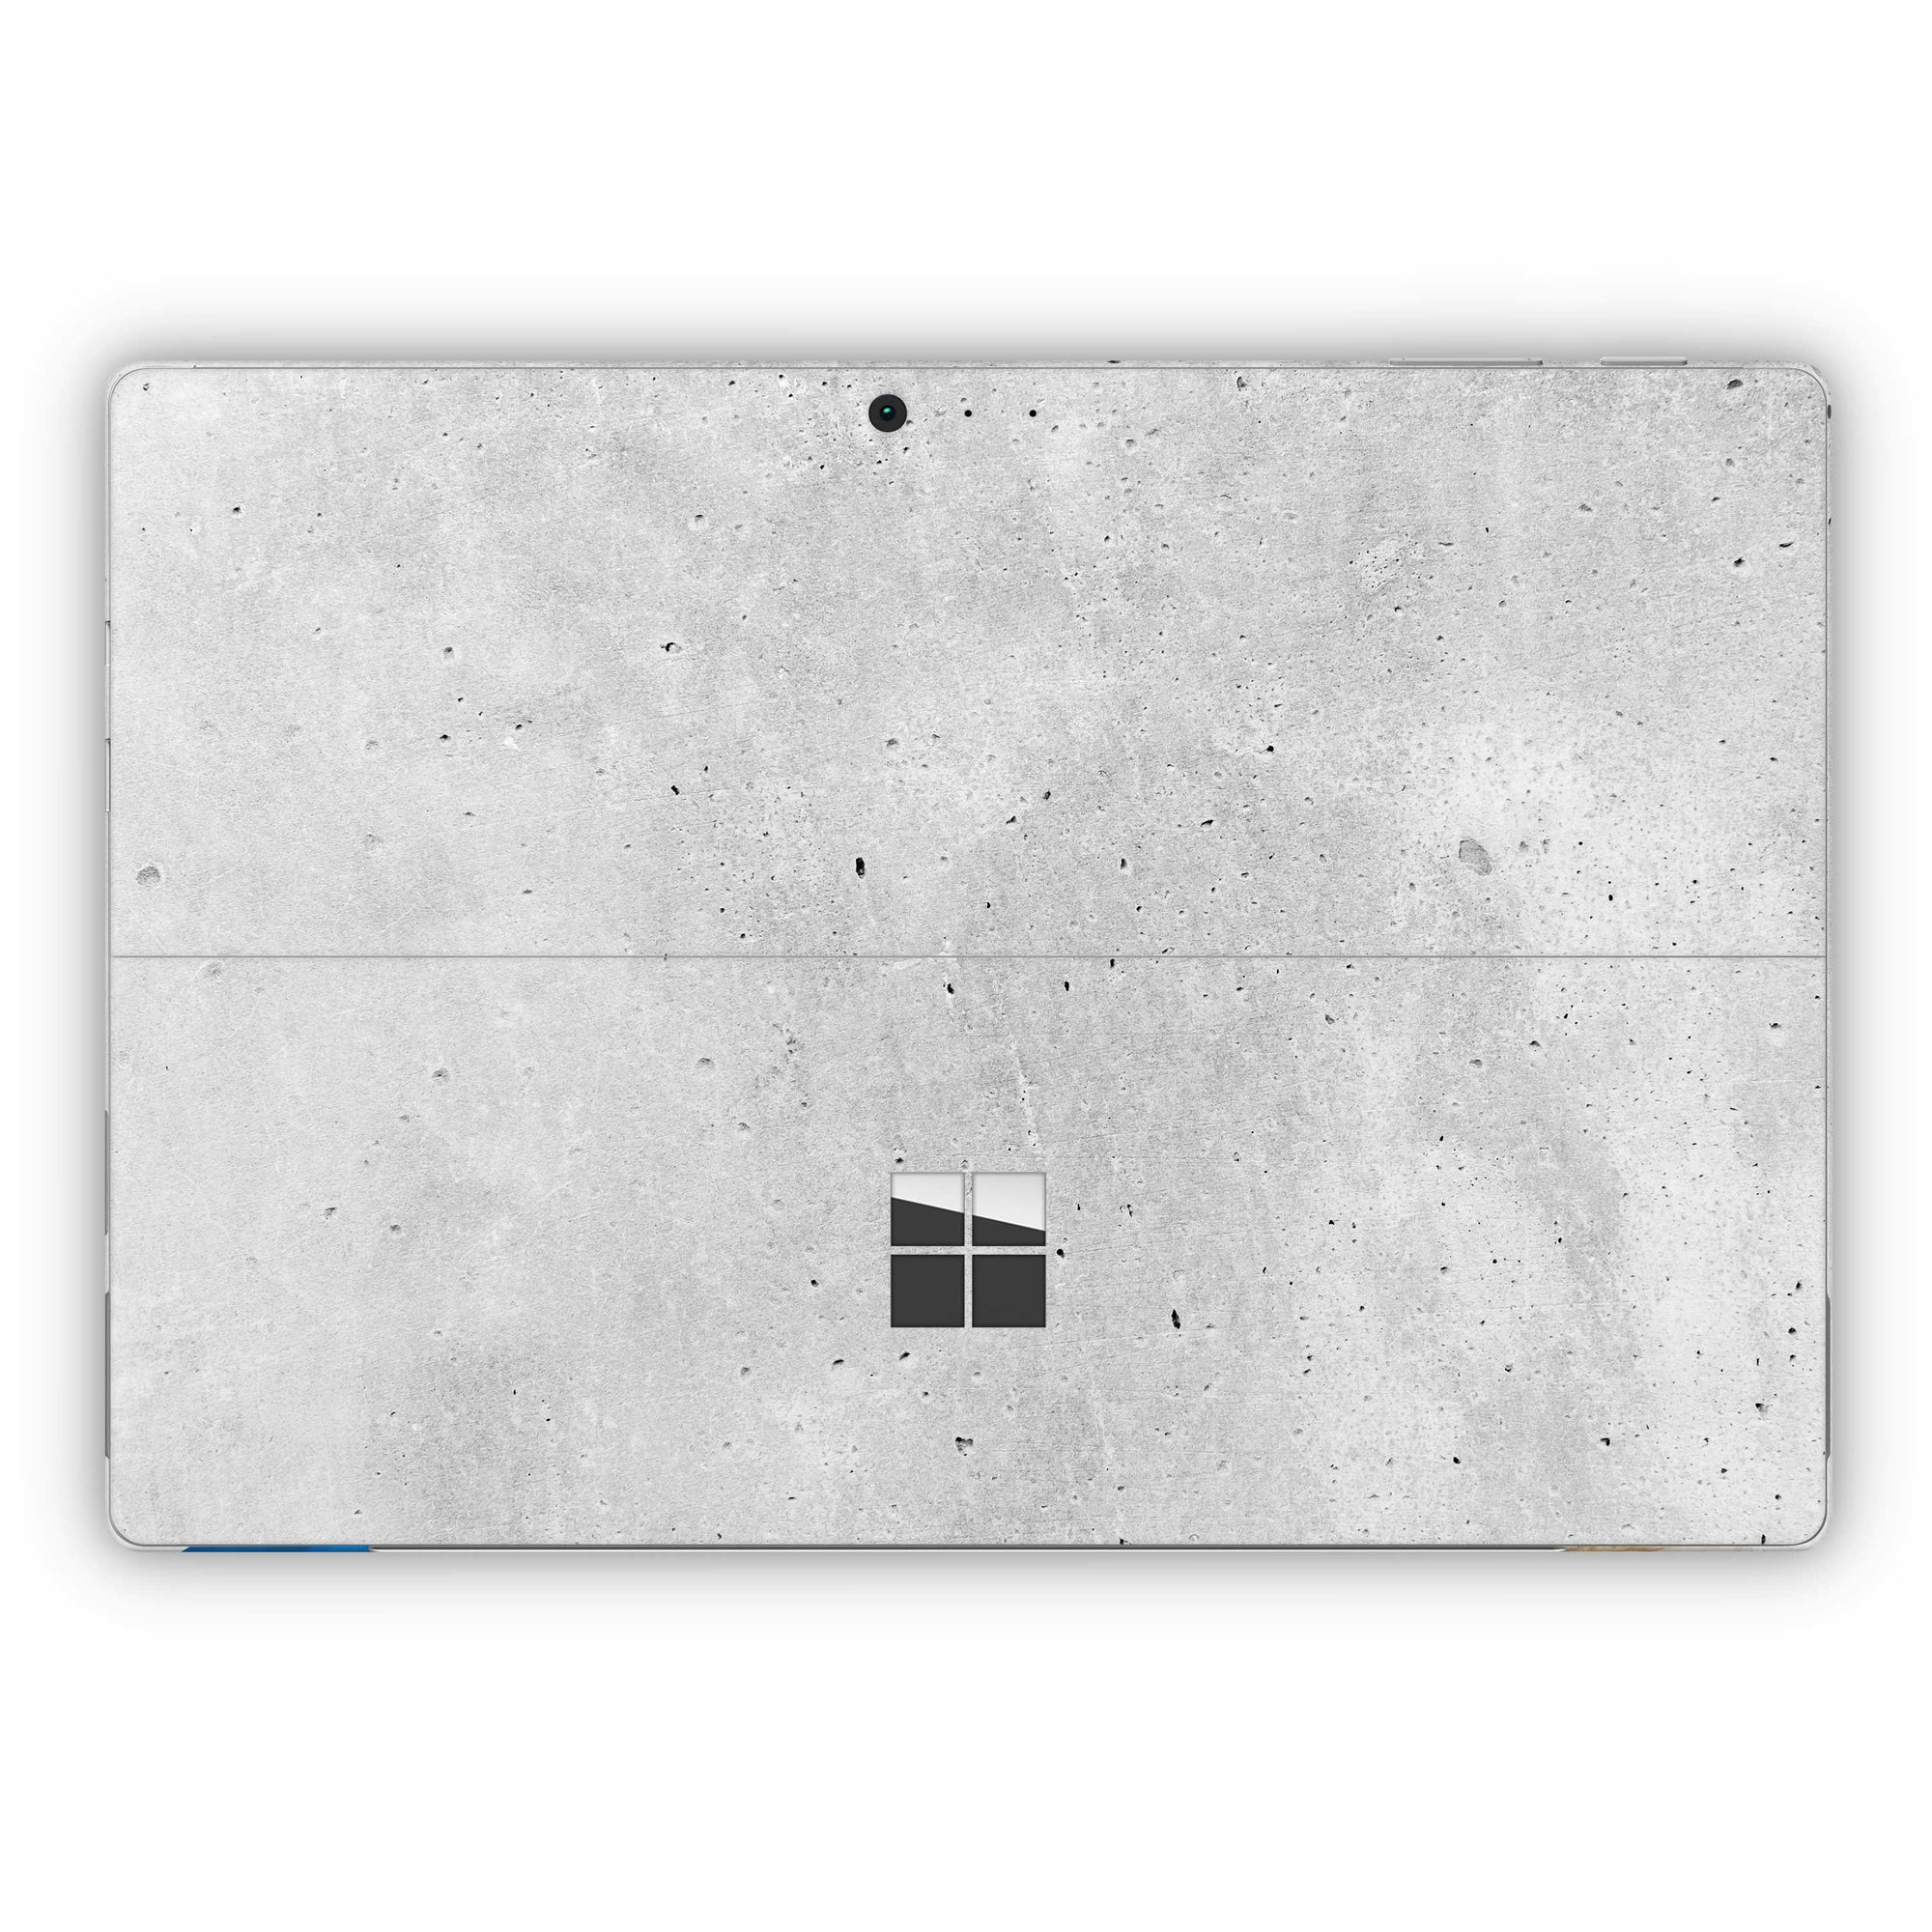 Concrete Surface Pro 5 and Surface Pro 6 Skin